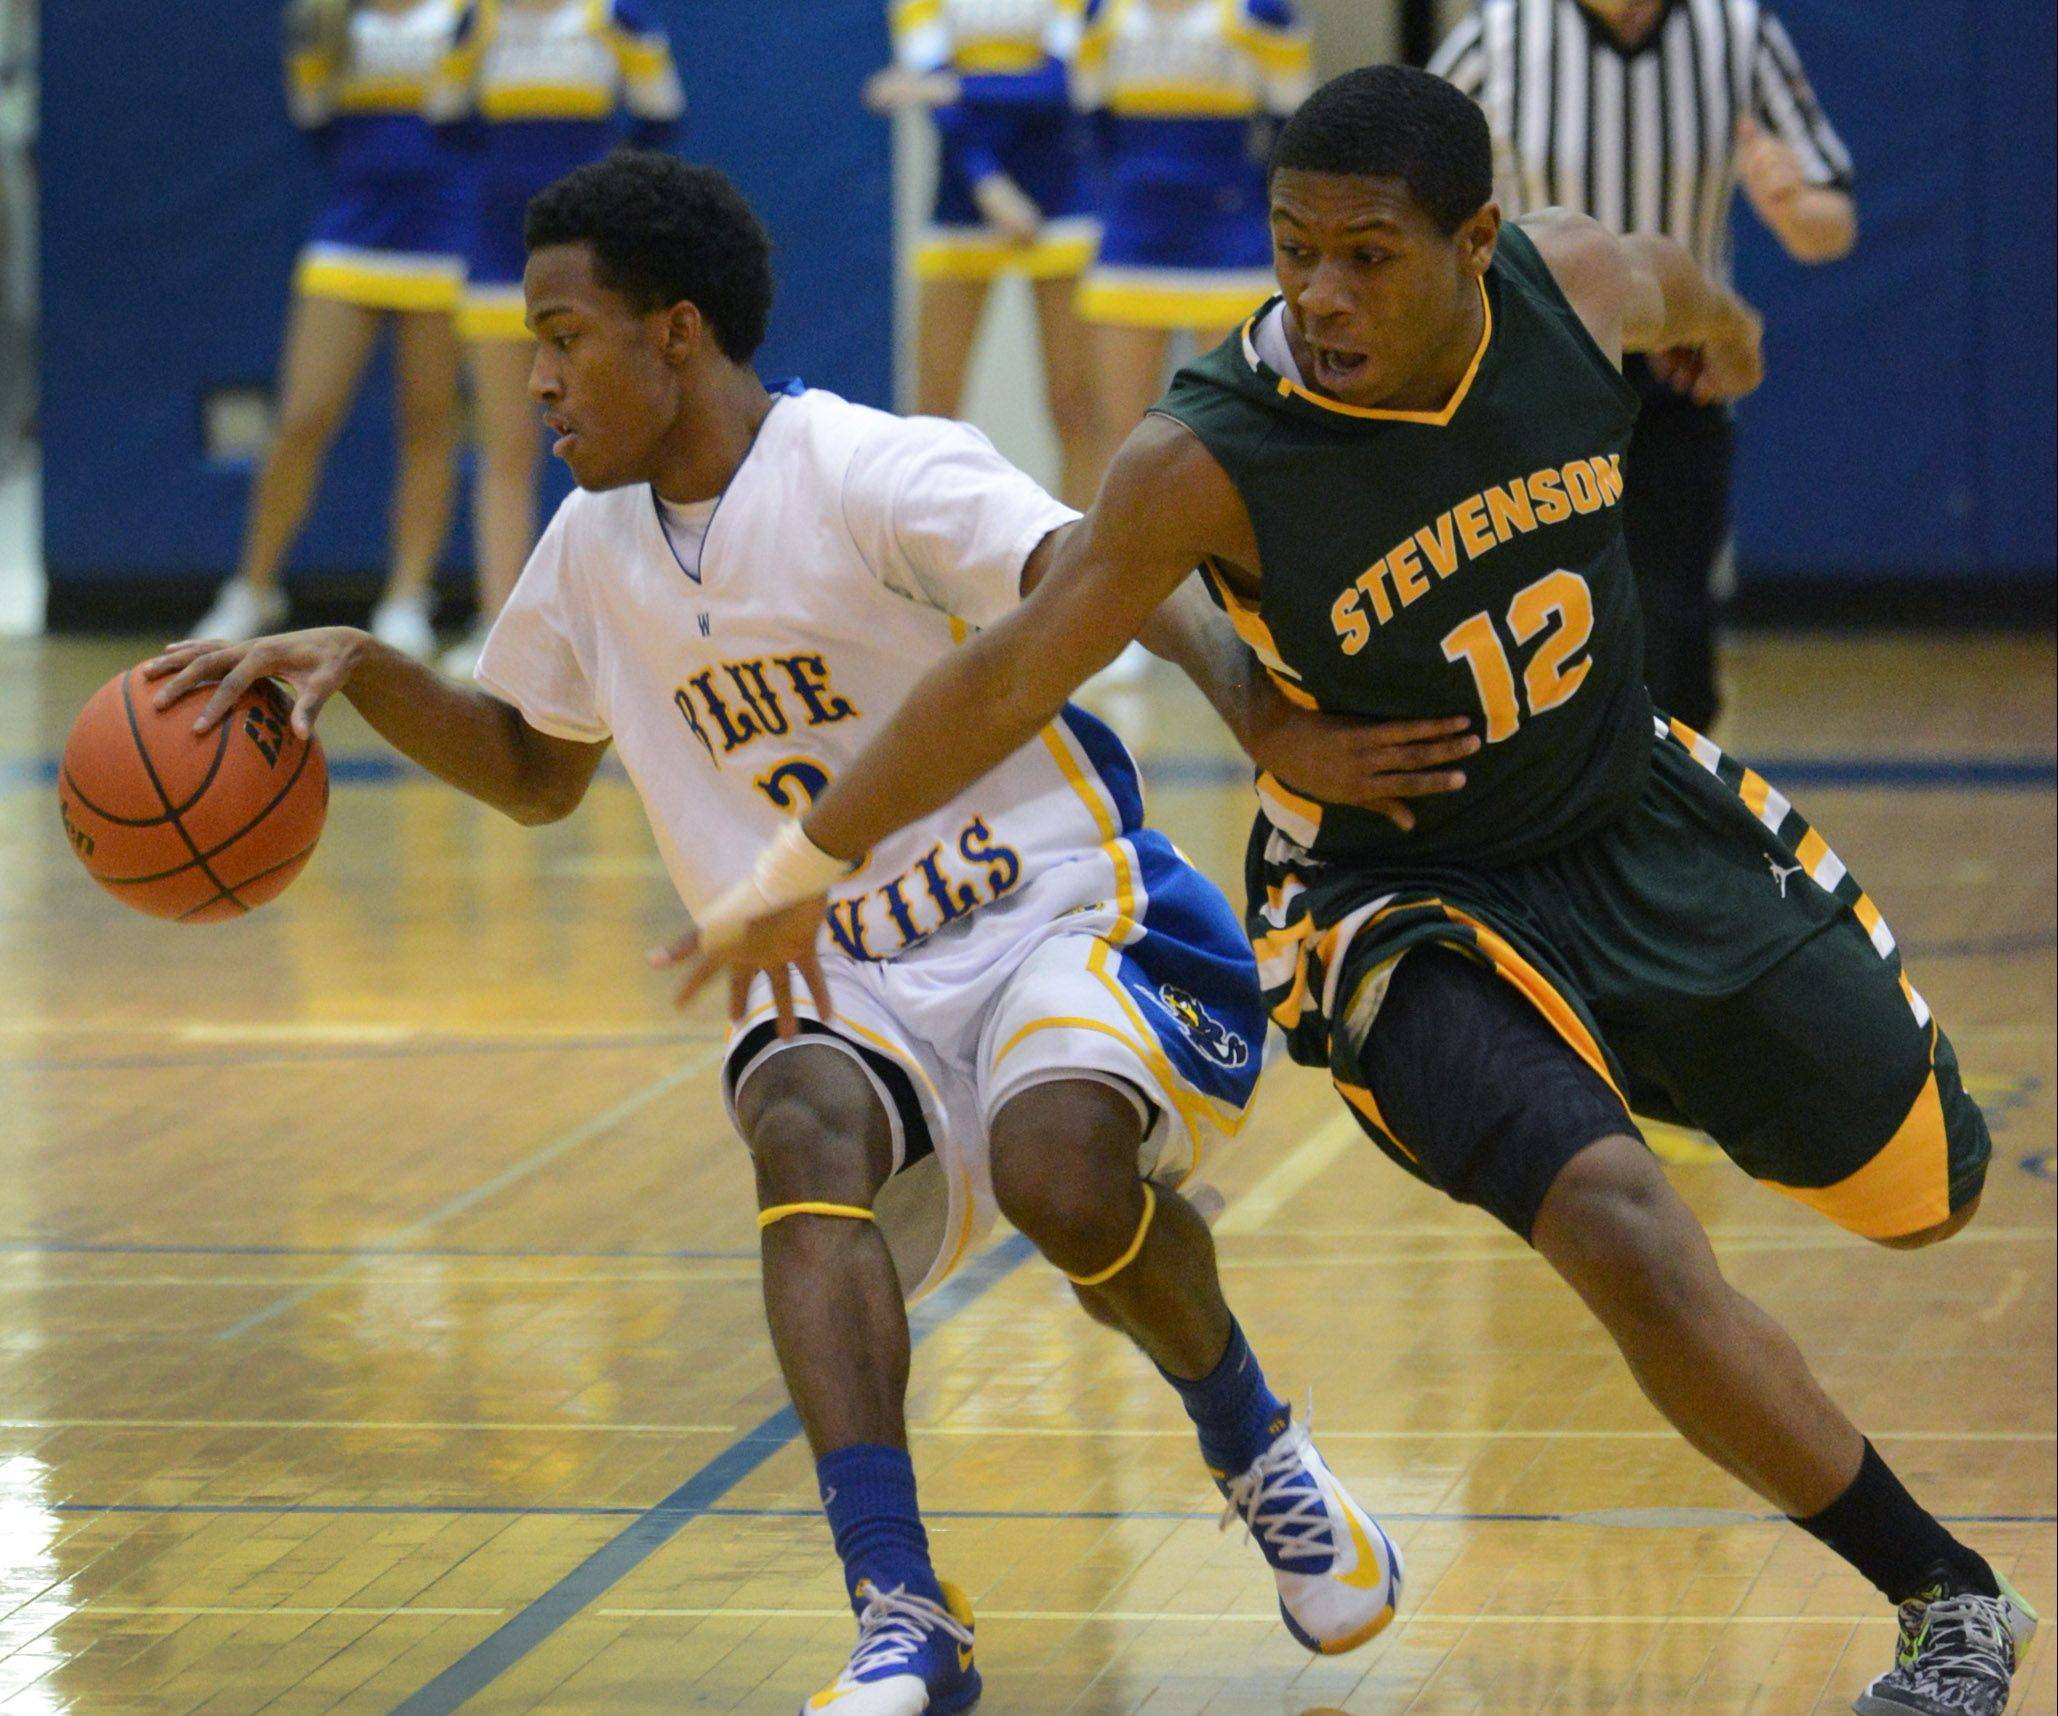 Stevenson's Matthew Johnson (12) attempts the steal on Warren's Eric Gillespie on Friday in Gurnee.